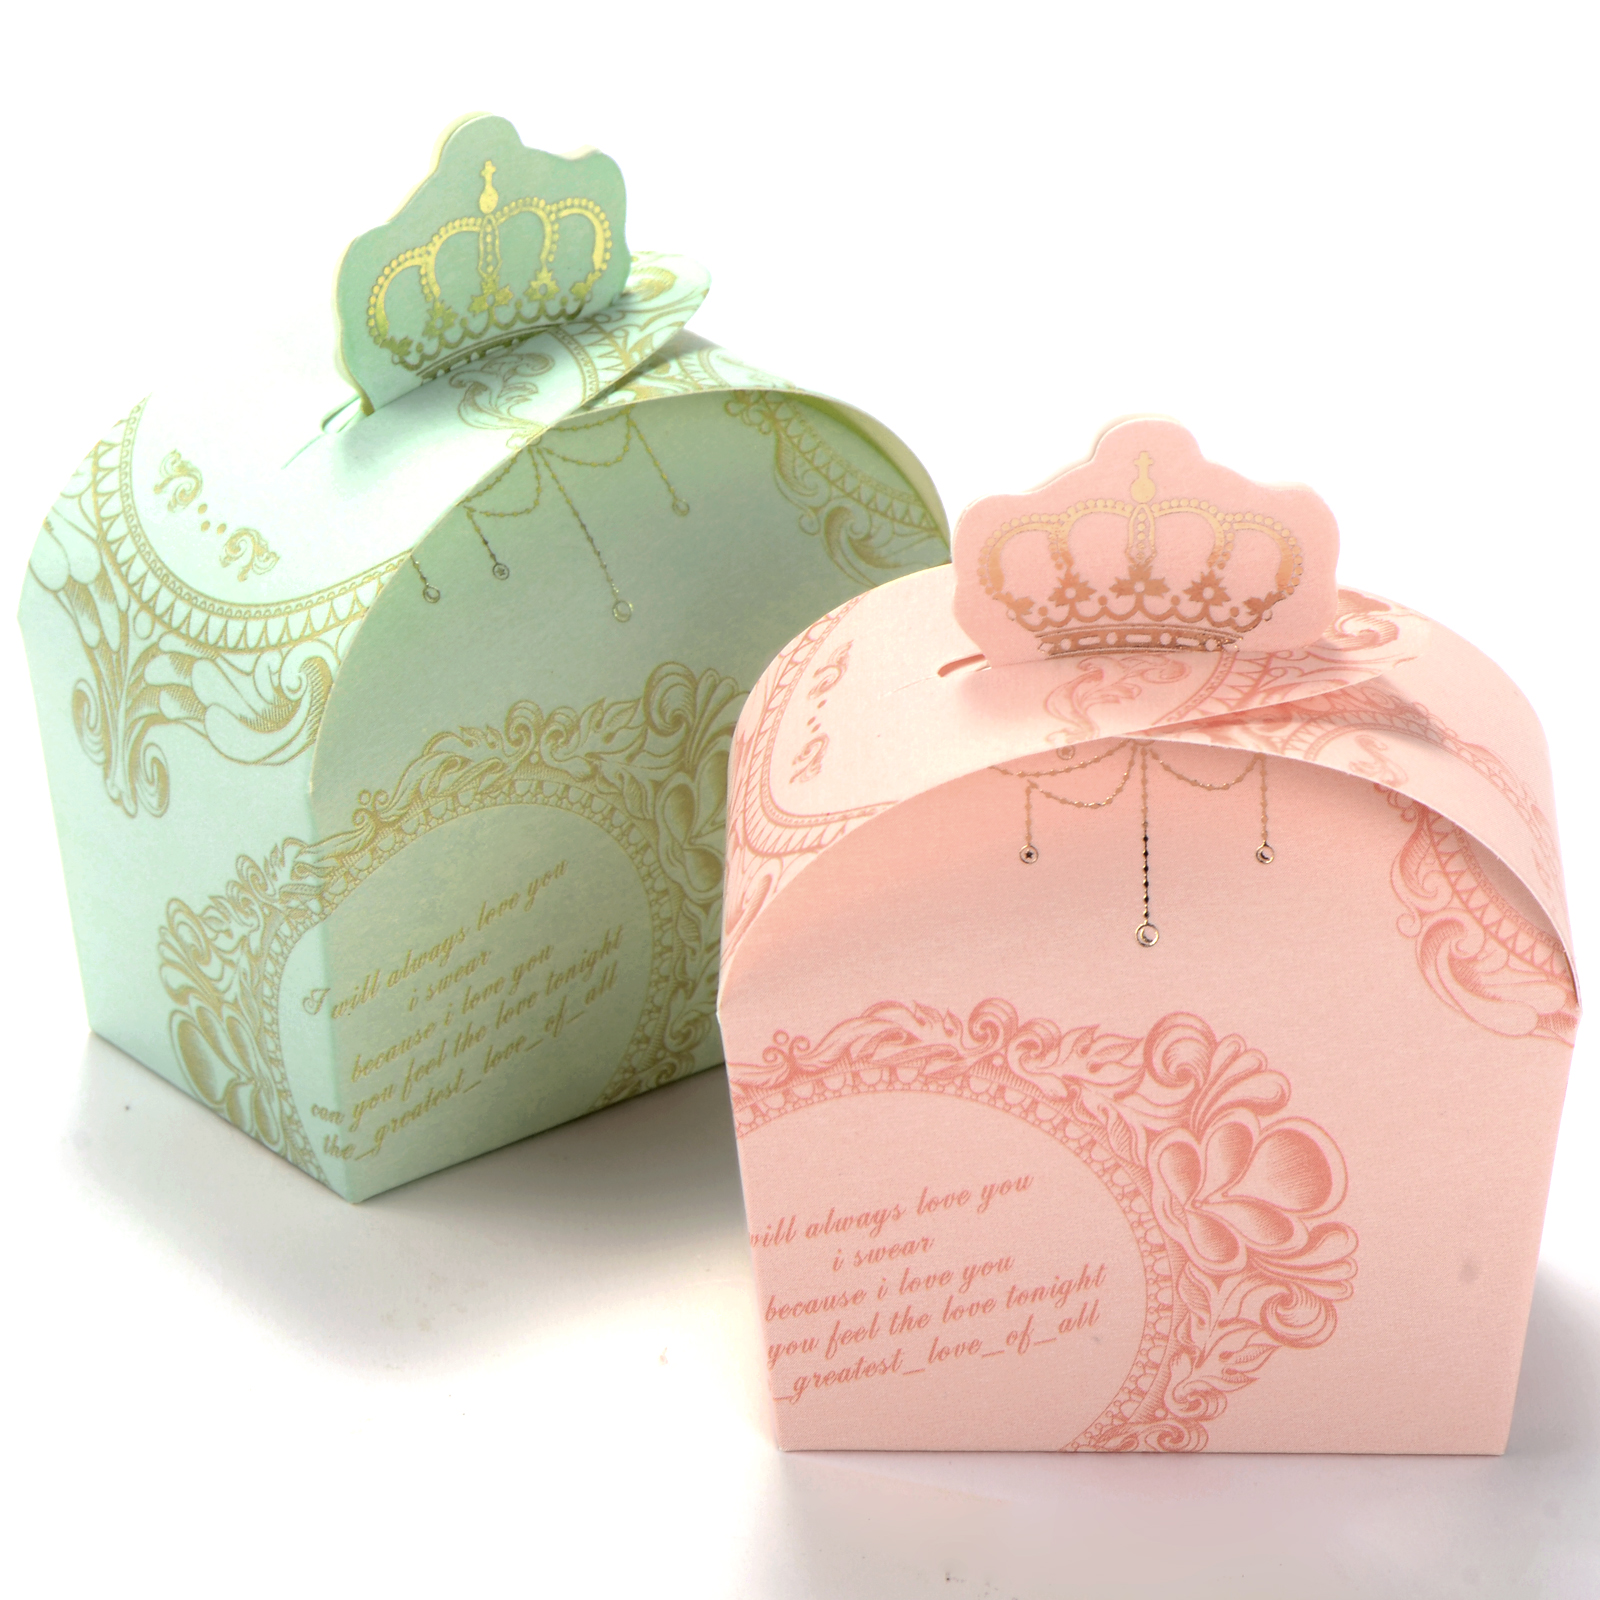 Boxes For Baby Shower Favors: 50x Wedding Favor Candy Box Royal Crown Design Baby Shower